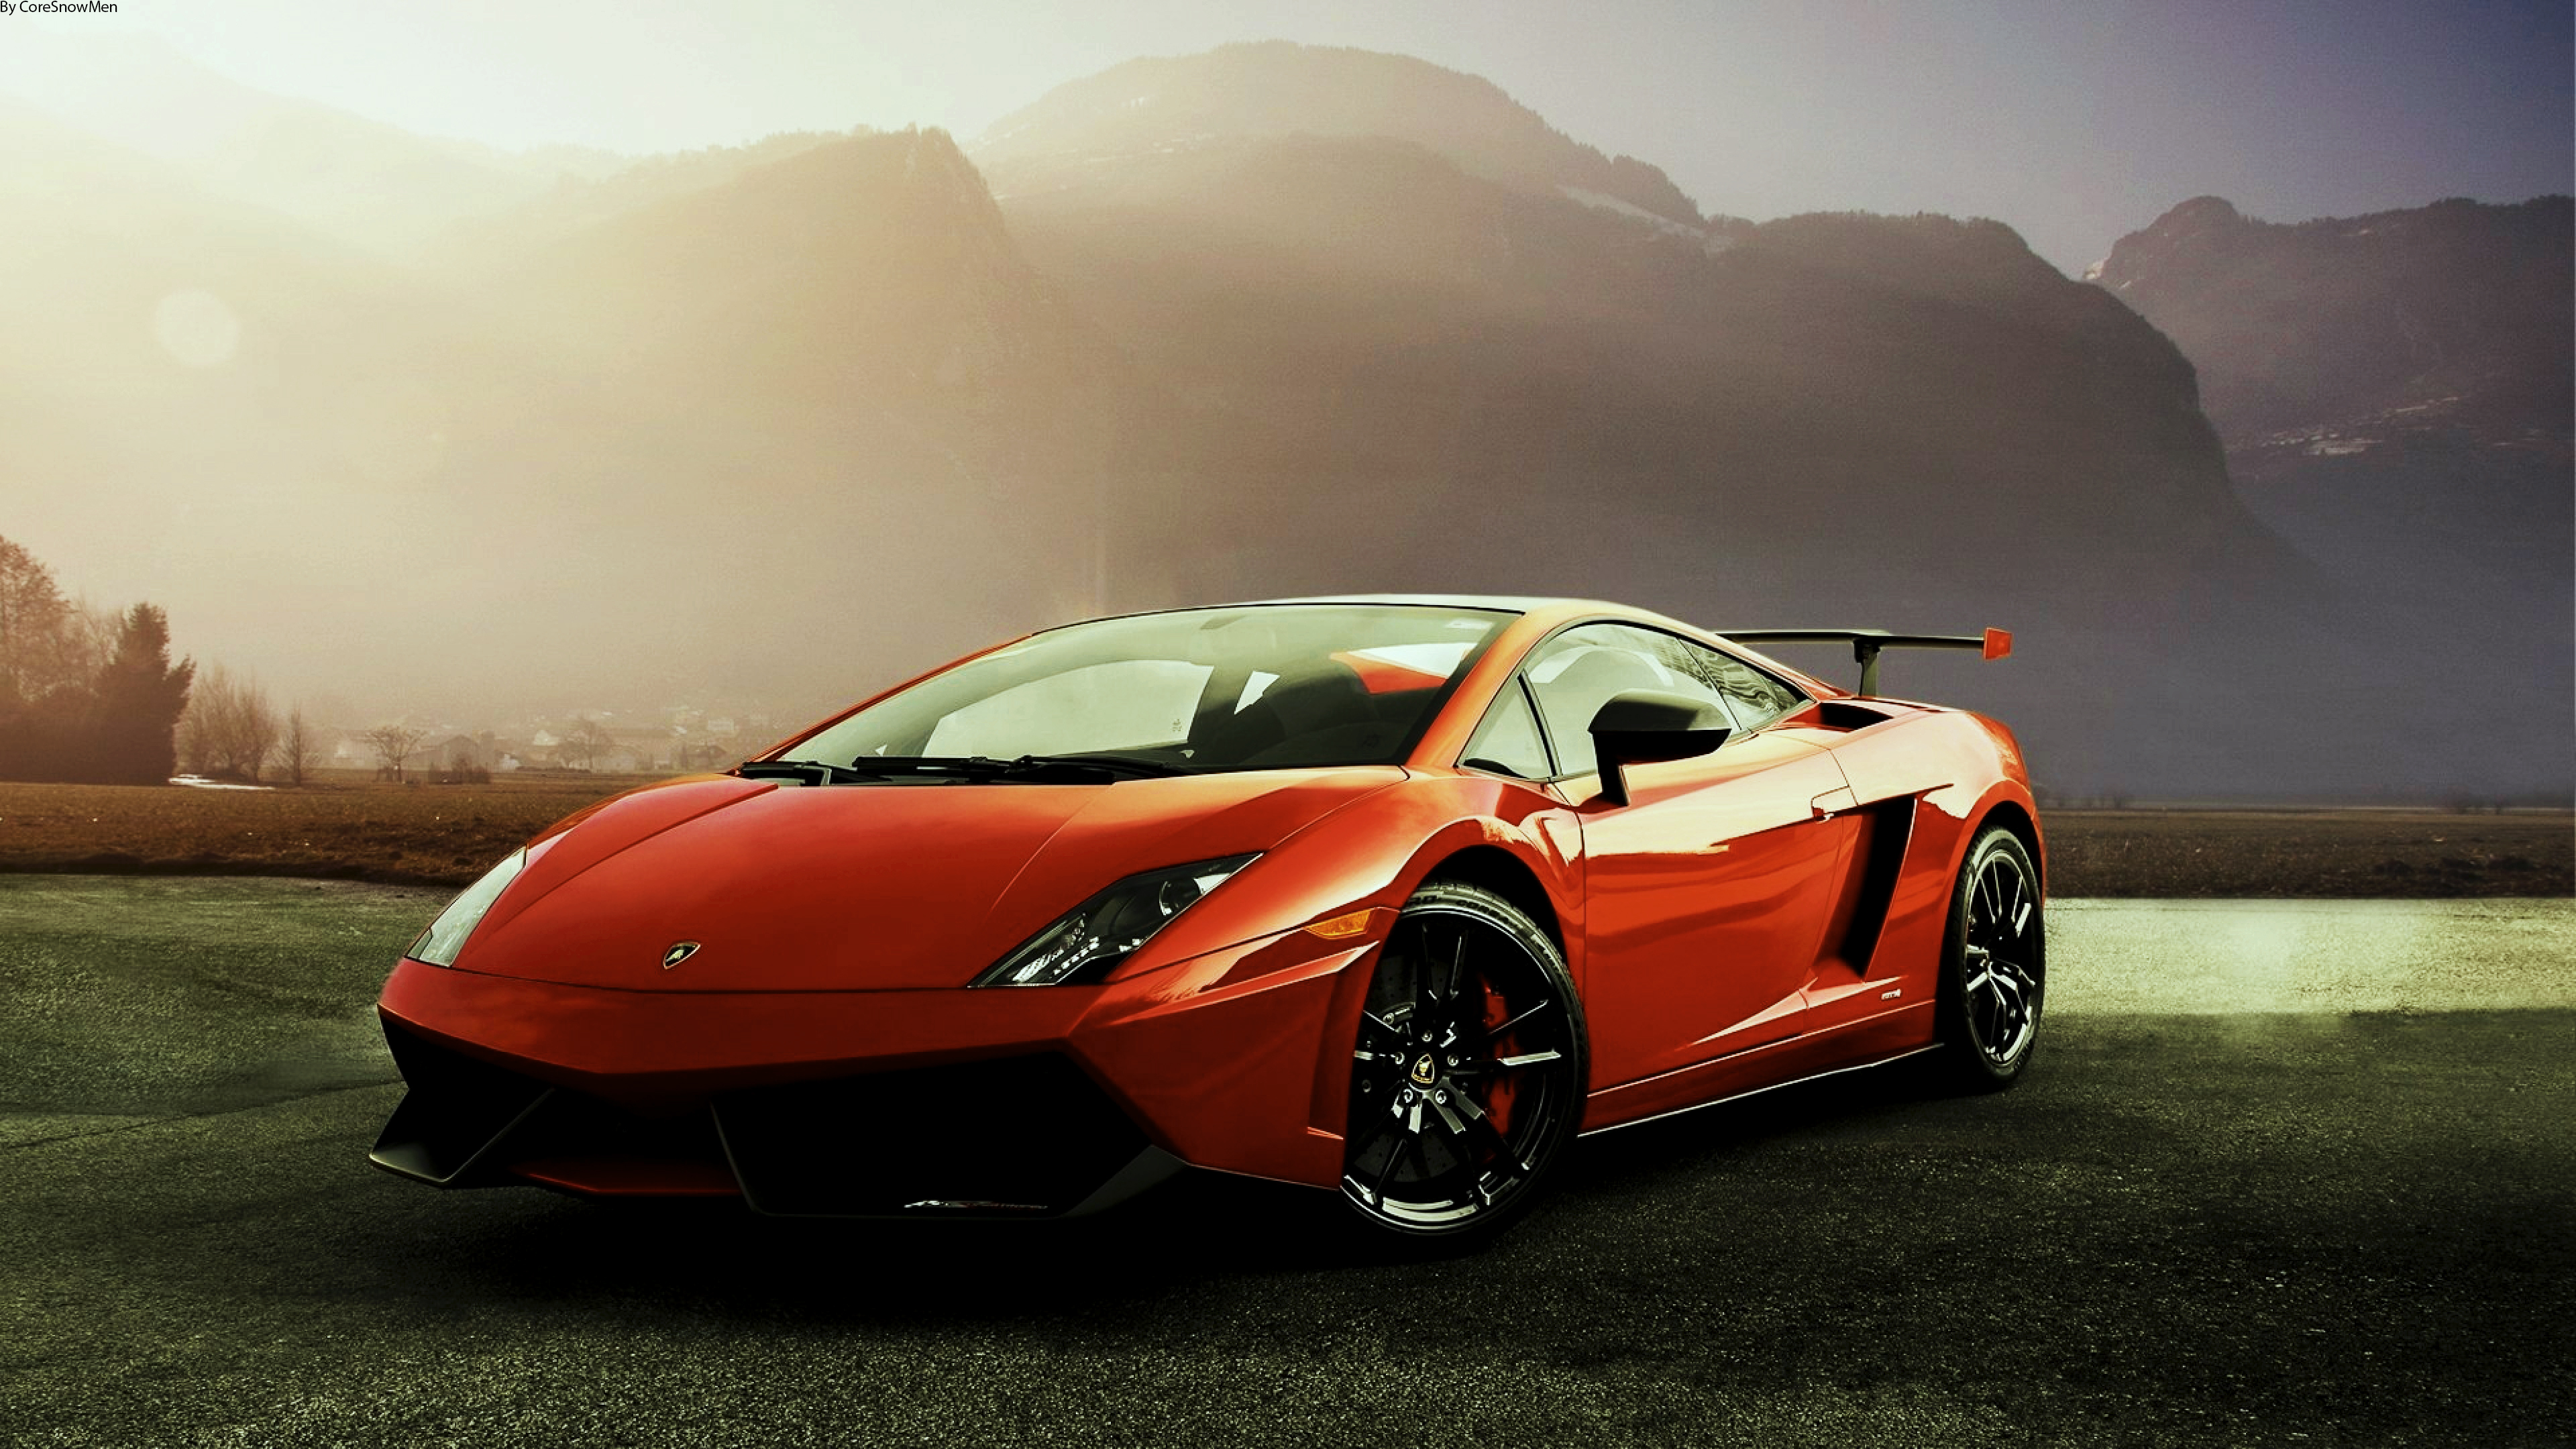 137 Lamborghini Gallardo Hd Wallpapers Background Images Wallpaper Abyss